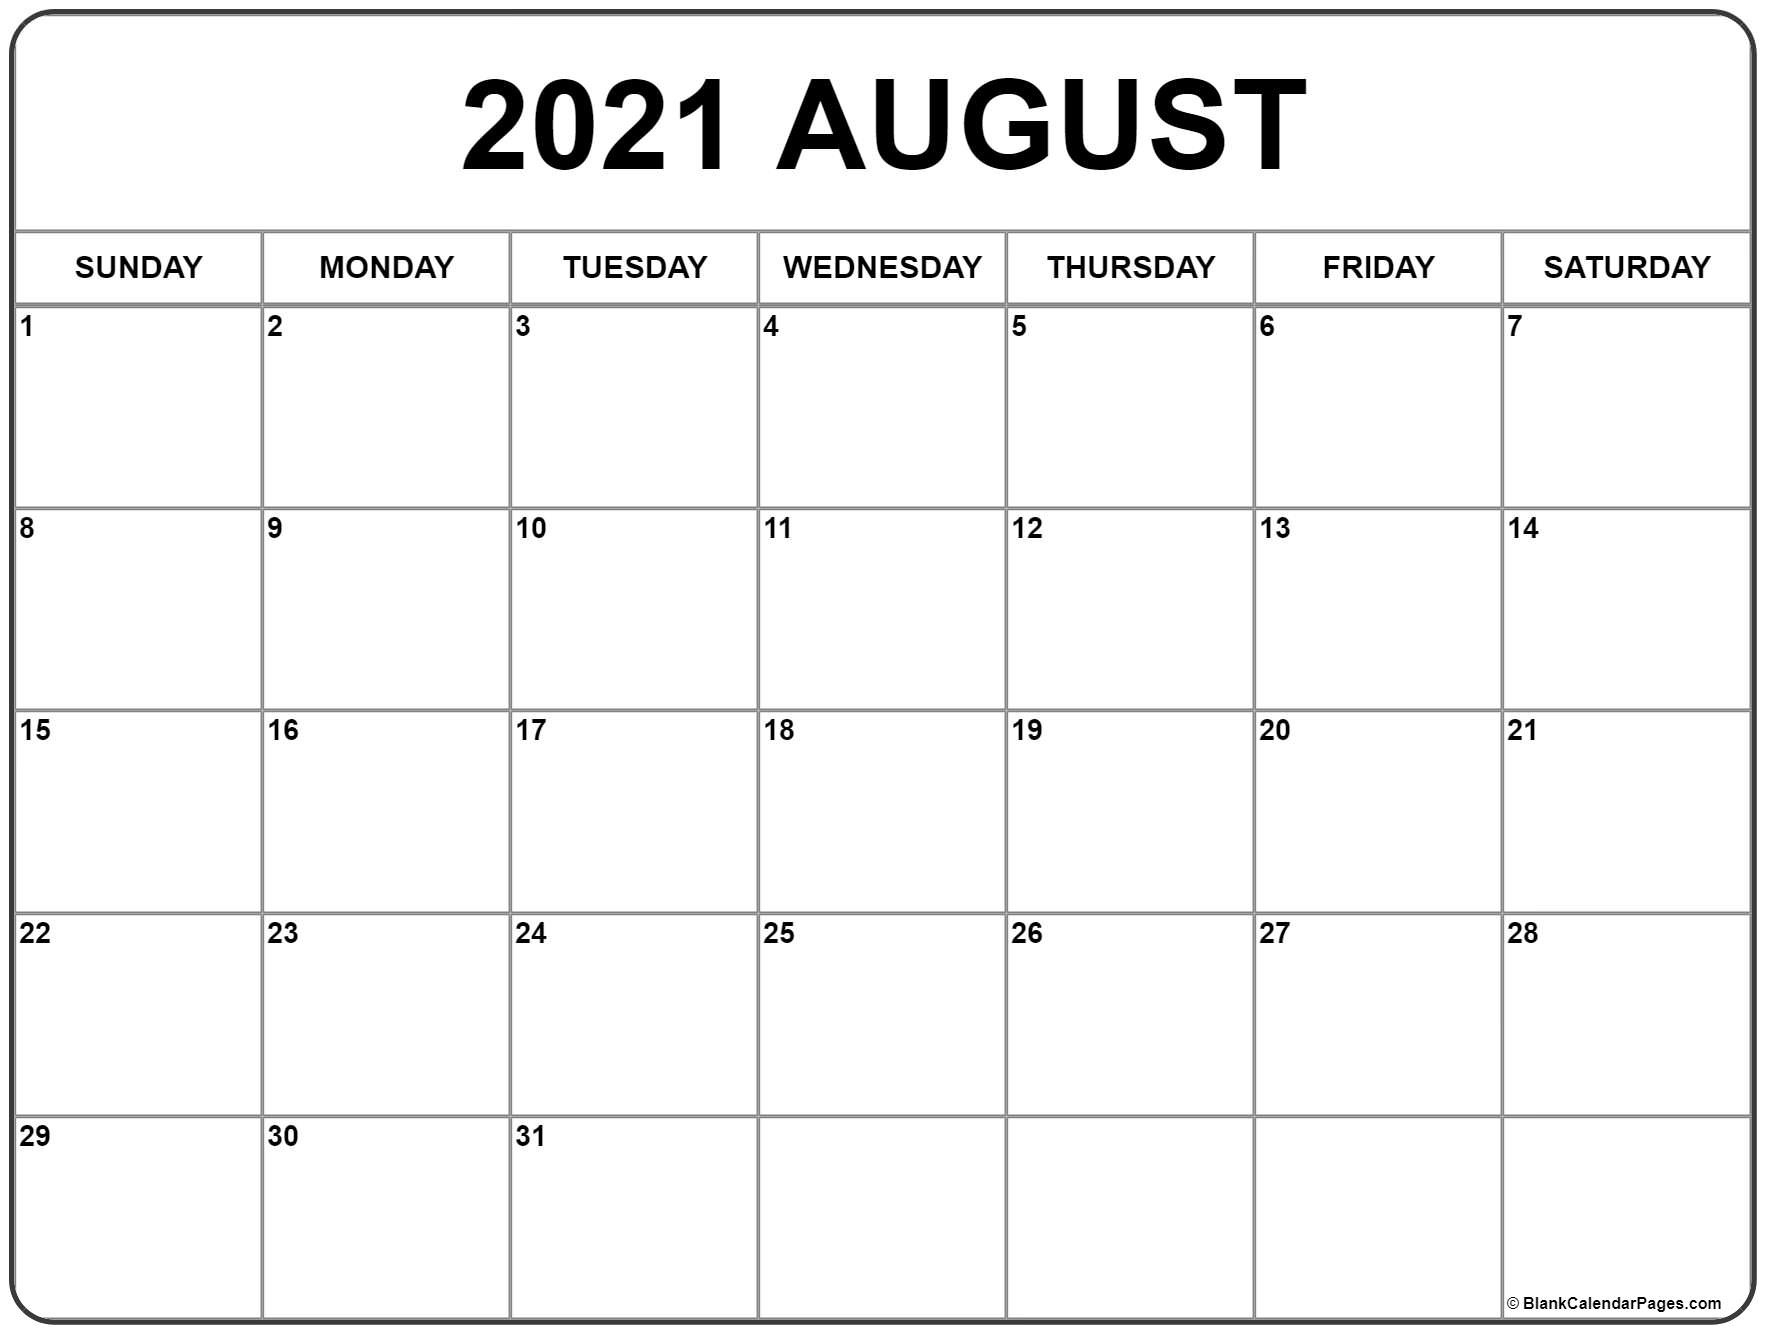 August 2021 Calendar | Free Printable Monthly Calendars  2021 Printable Calendar By Month